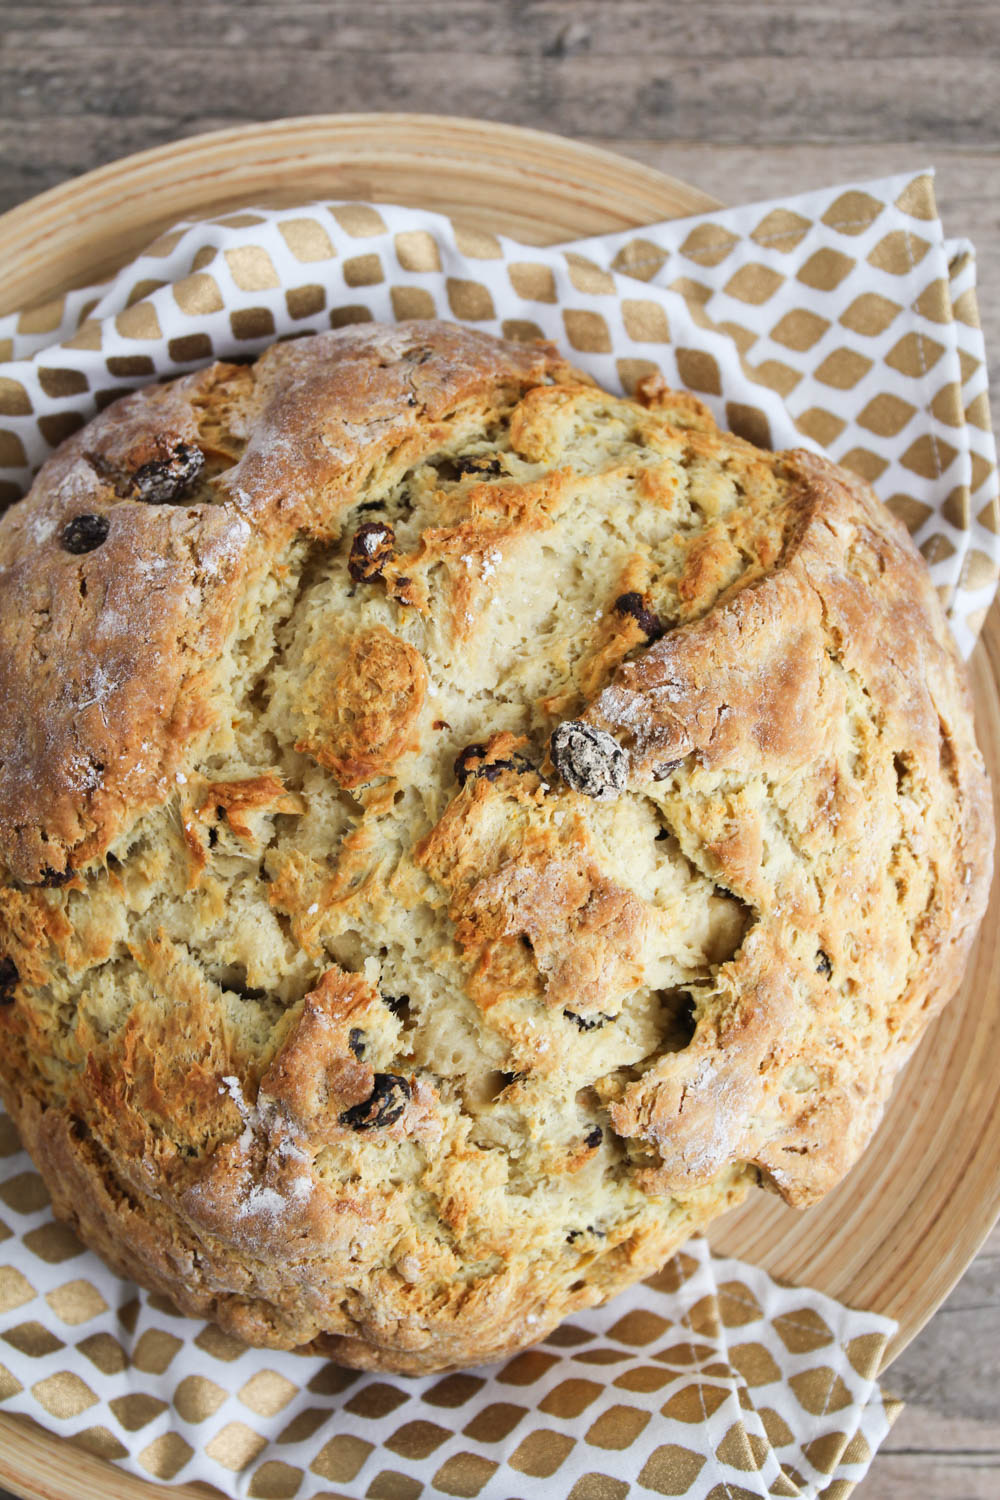 This sweet Irish soda bread is crisp on the outside, soft and tender on the inside, and super delicious!